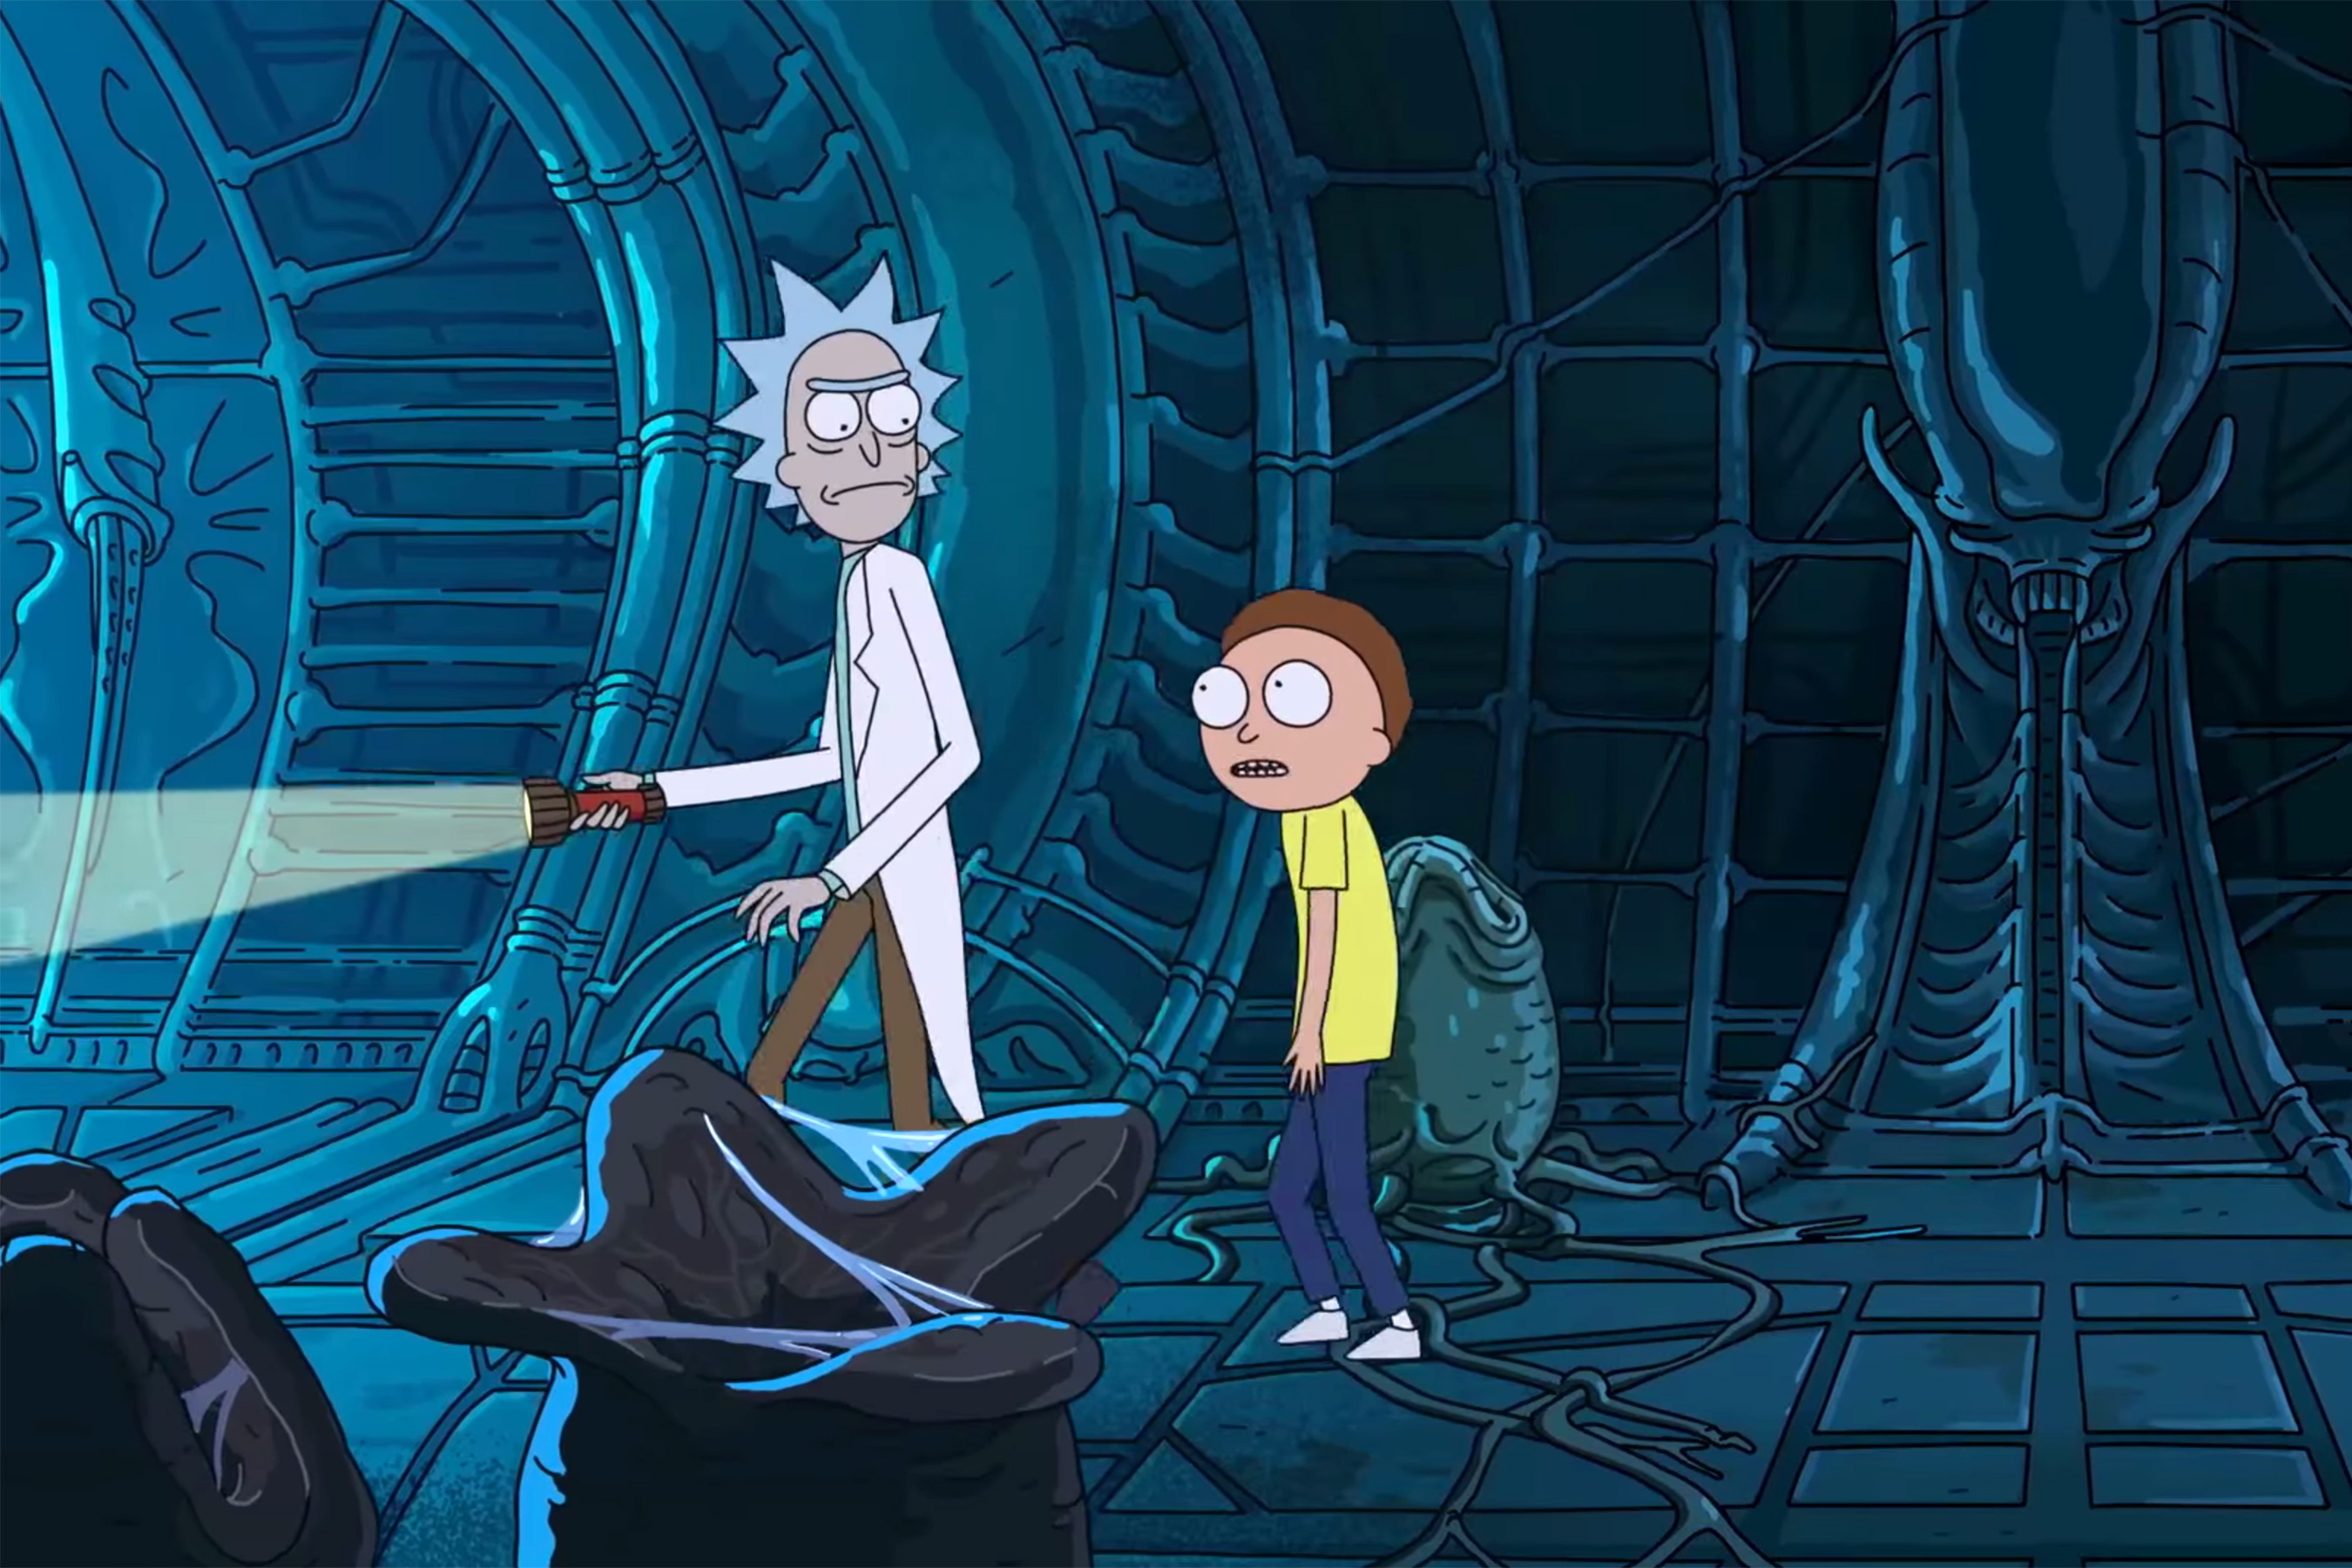 Rick and Morty season 4 release date progress report: When is episode 1 airing?